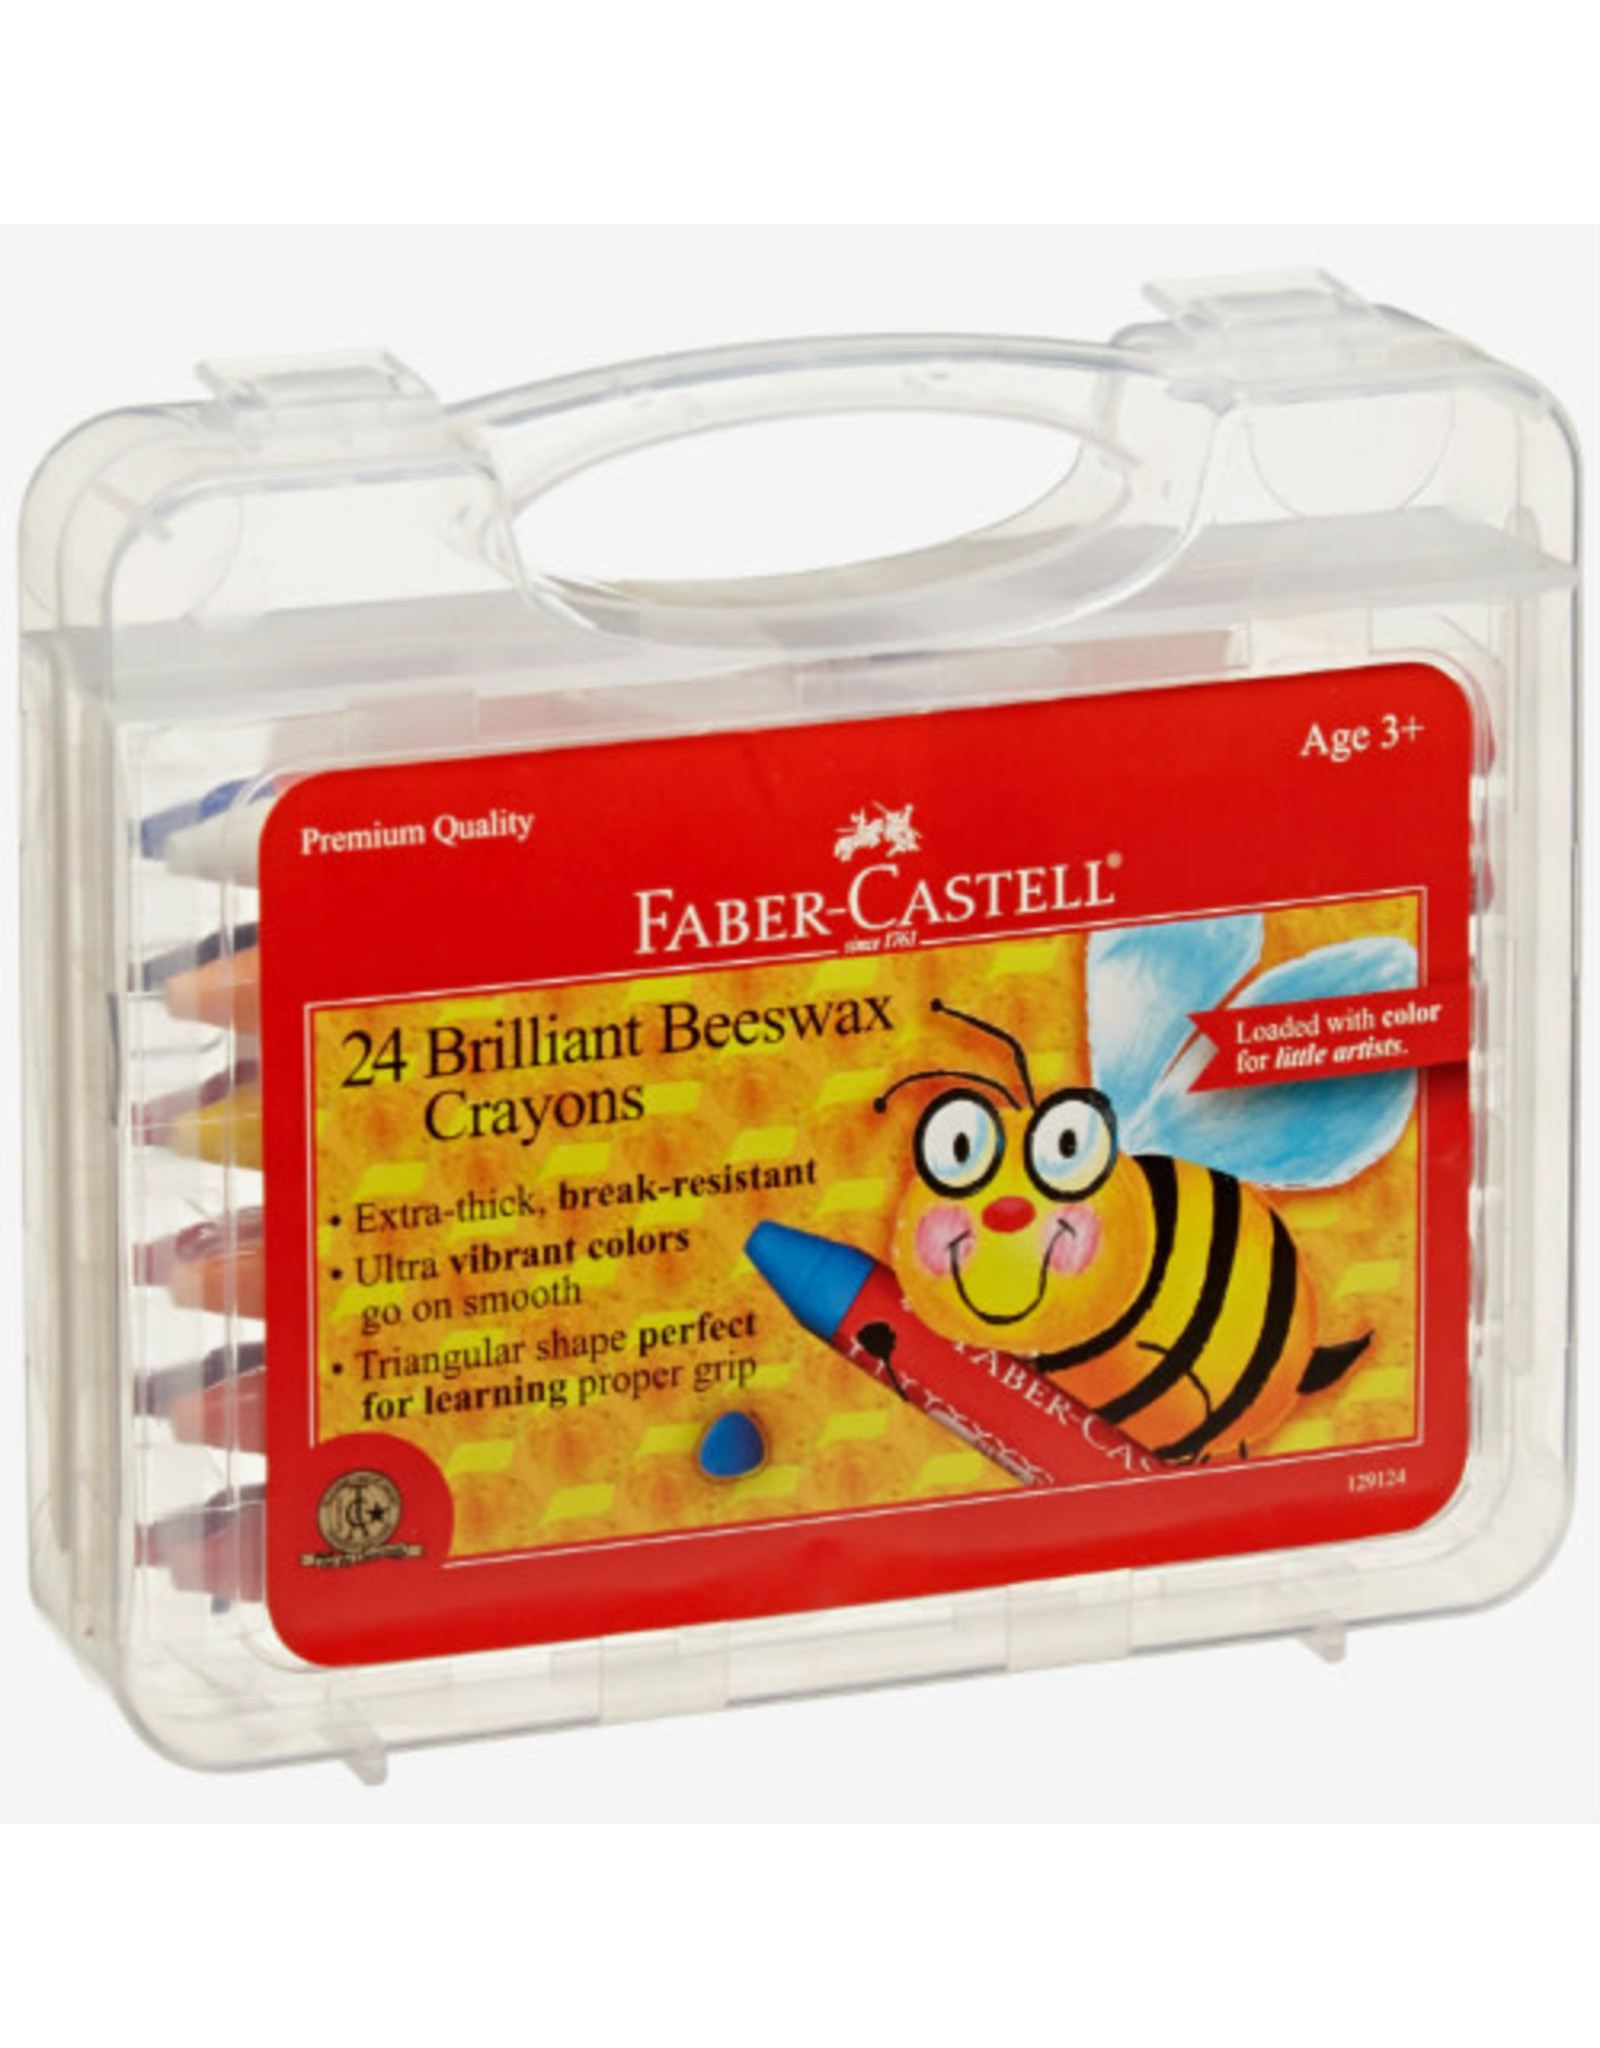 Faber-Castell 24ct Jumbo Beeswax Crayons in Storage Case